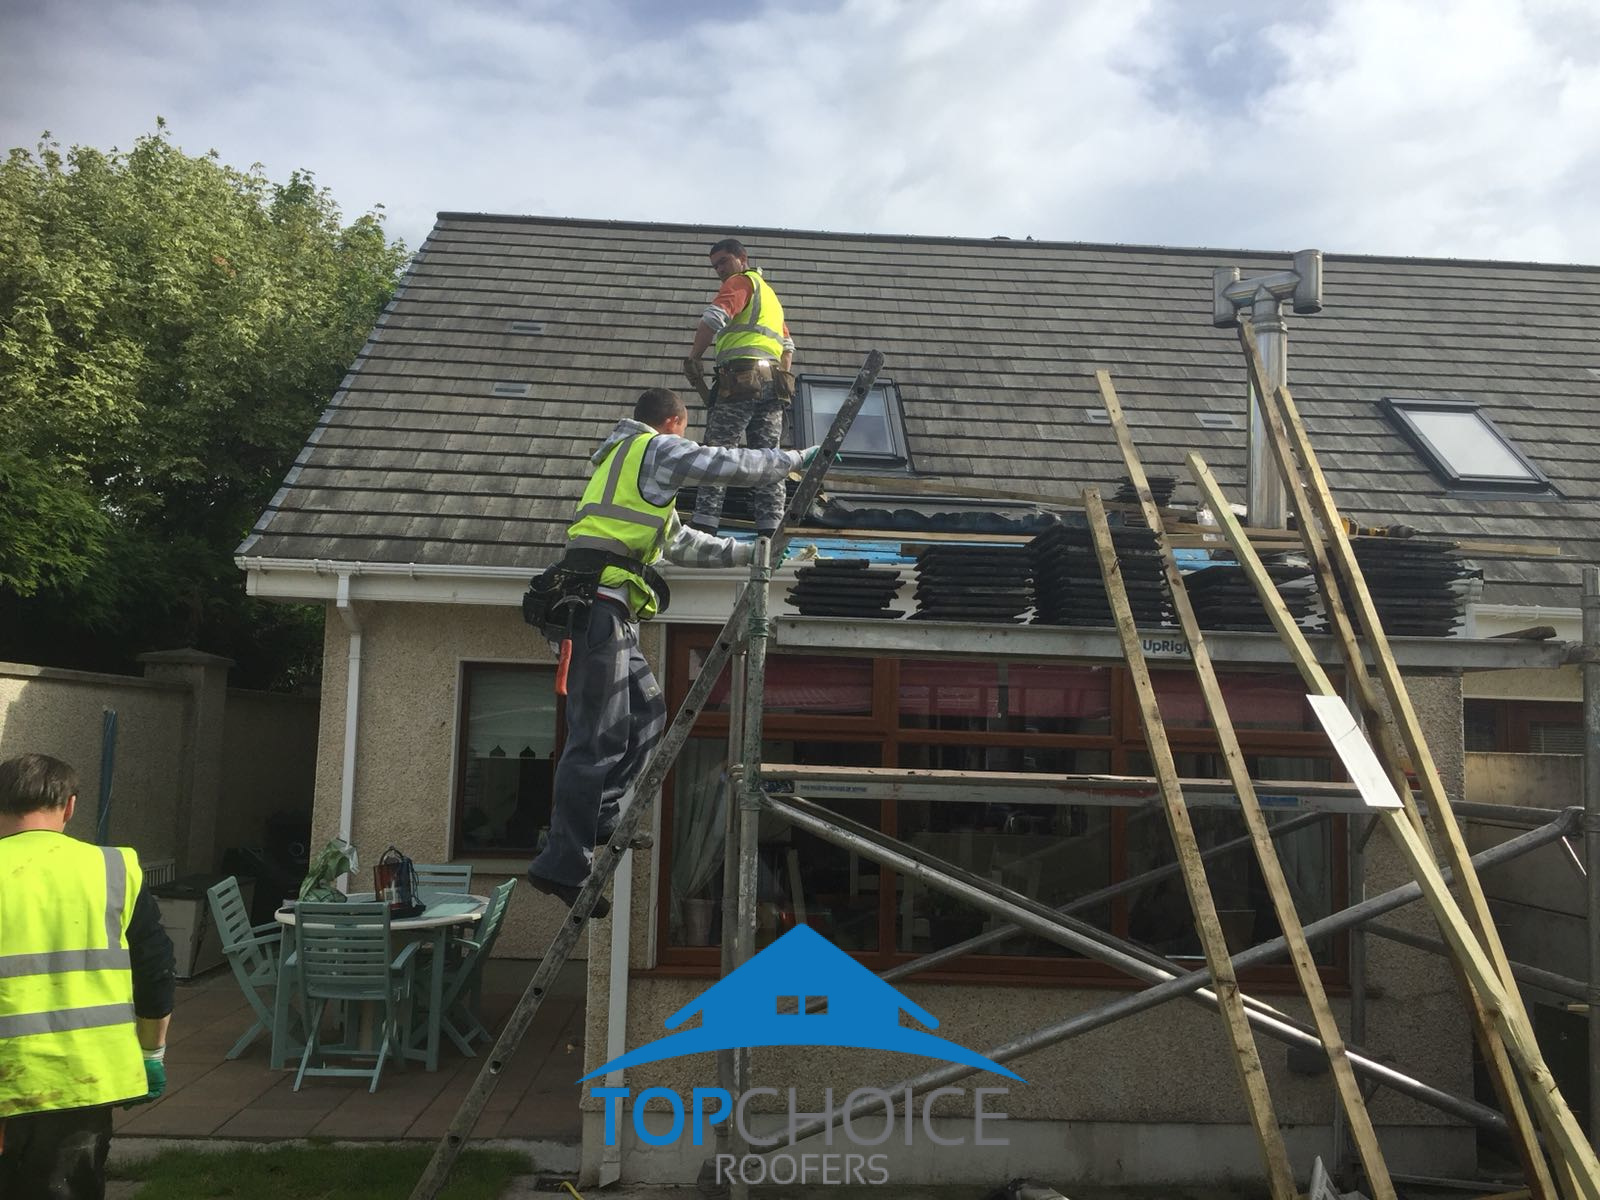 Roof Contractors Baldoyle, Roofing Repairs